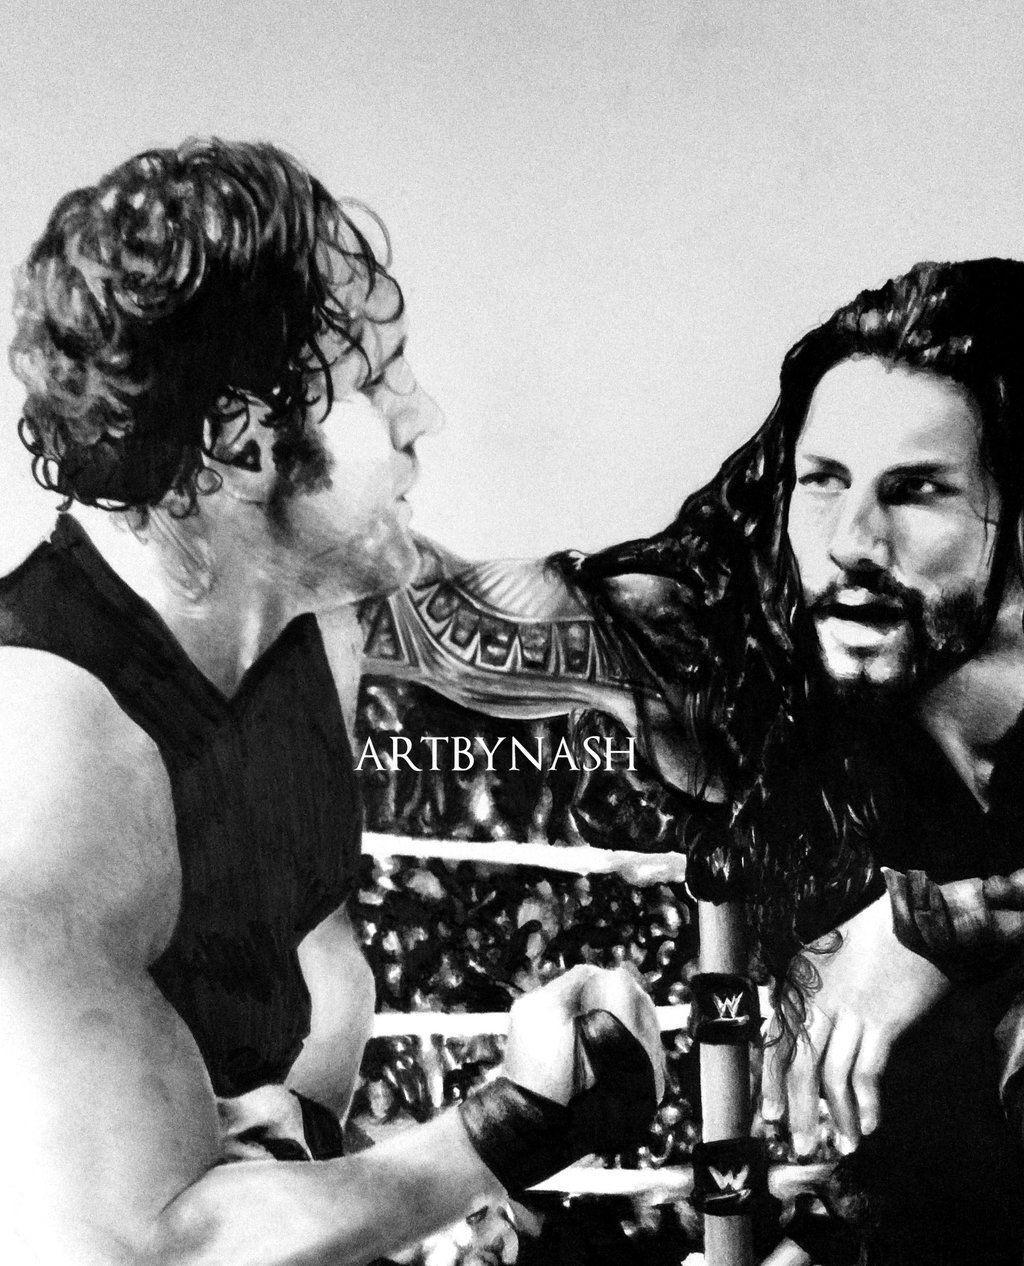 Brothers. Roman reigns and Dean ambrose